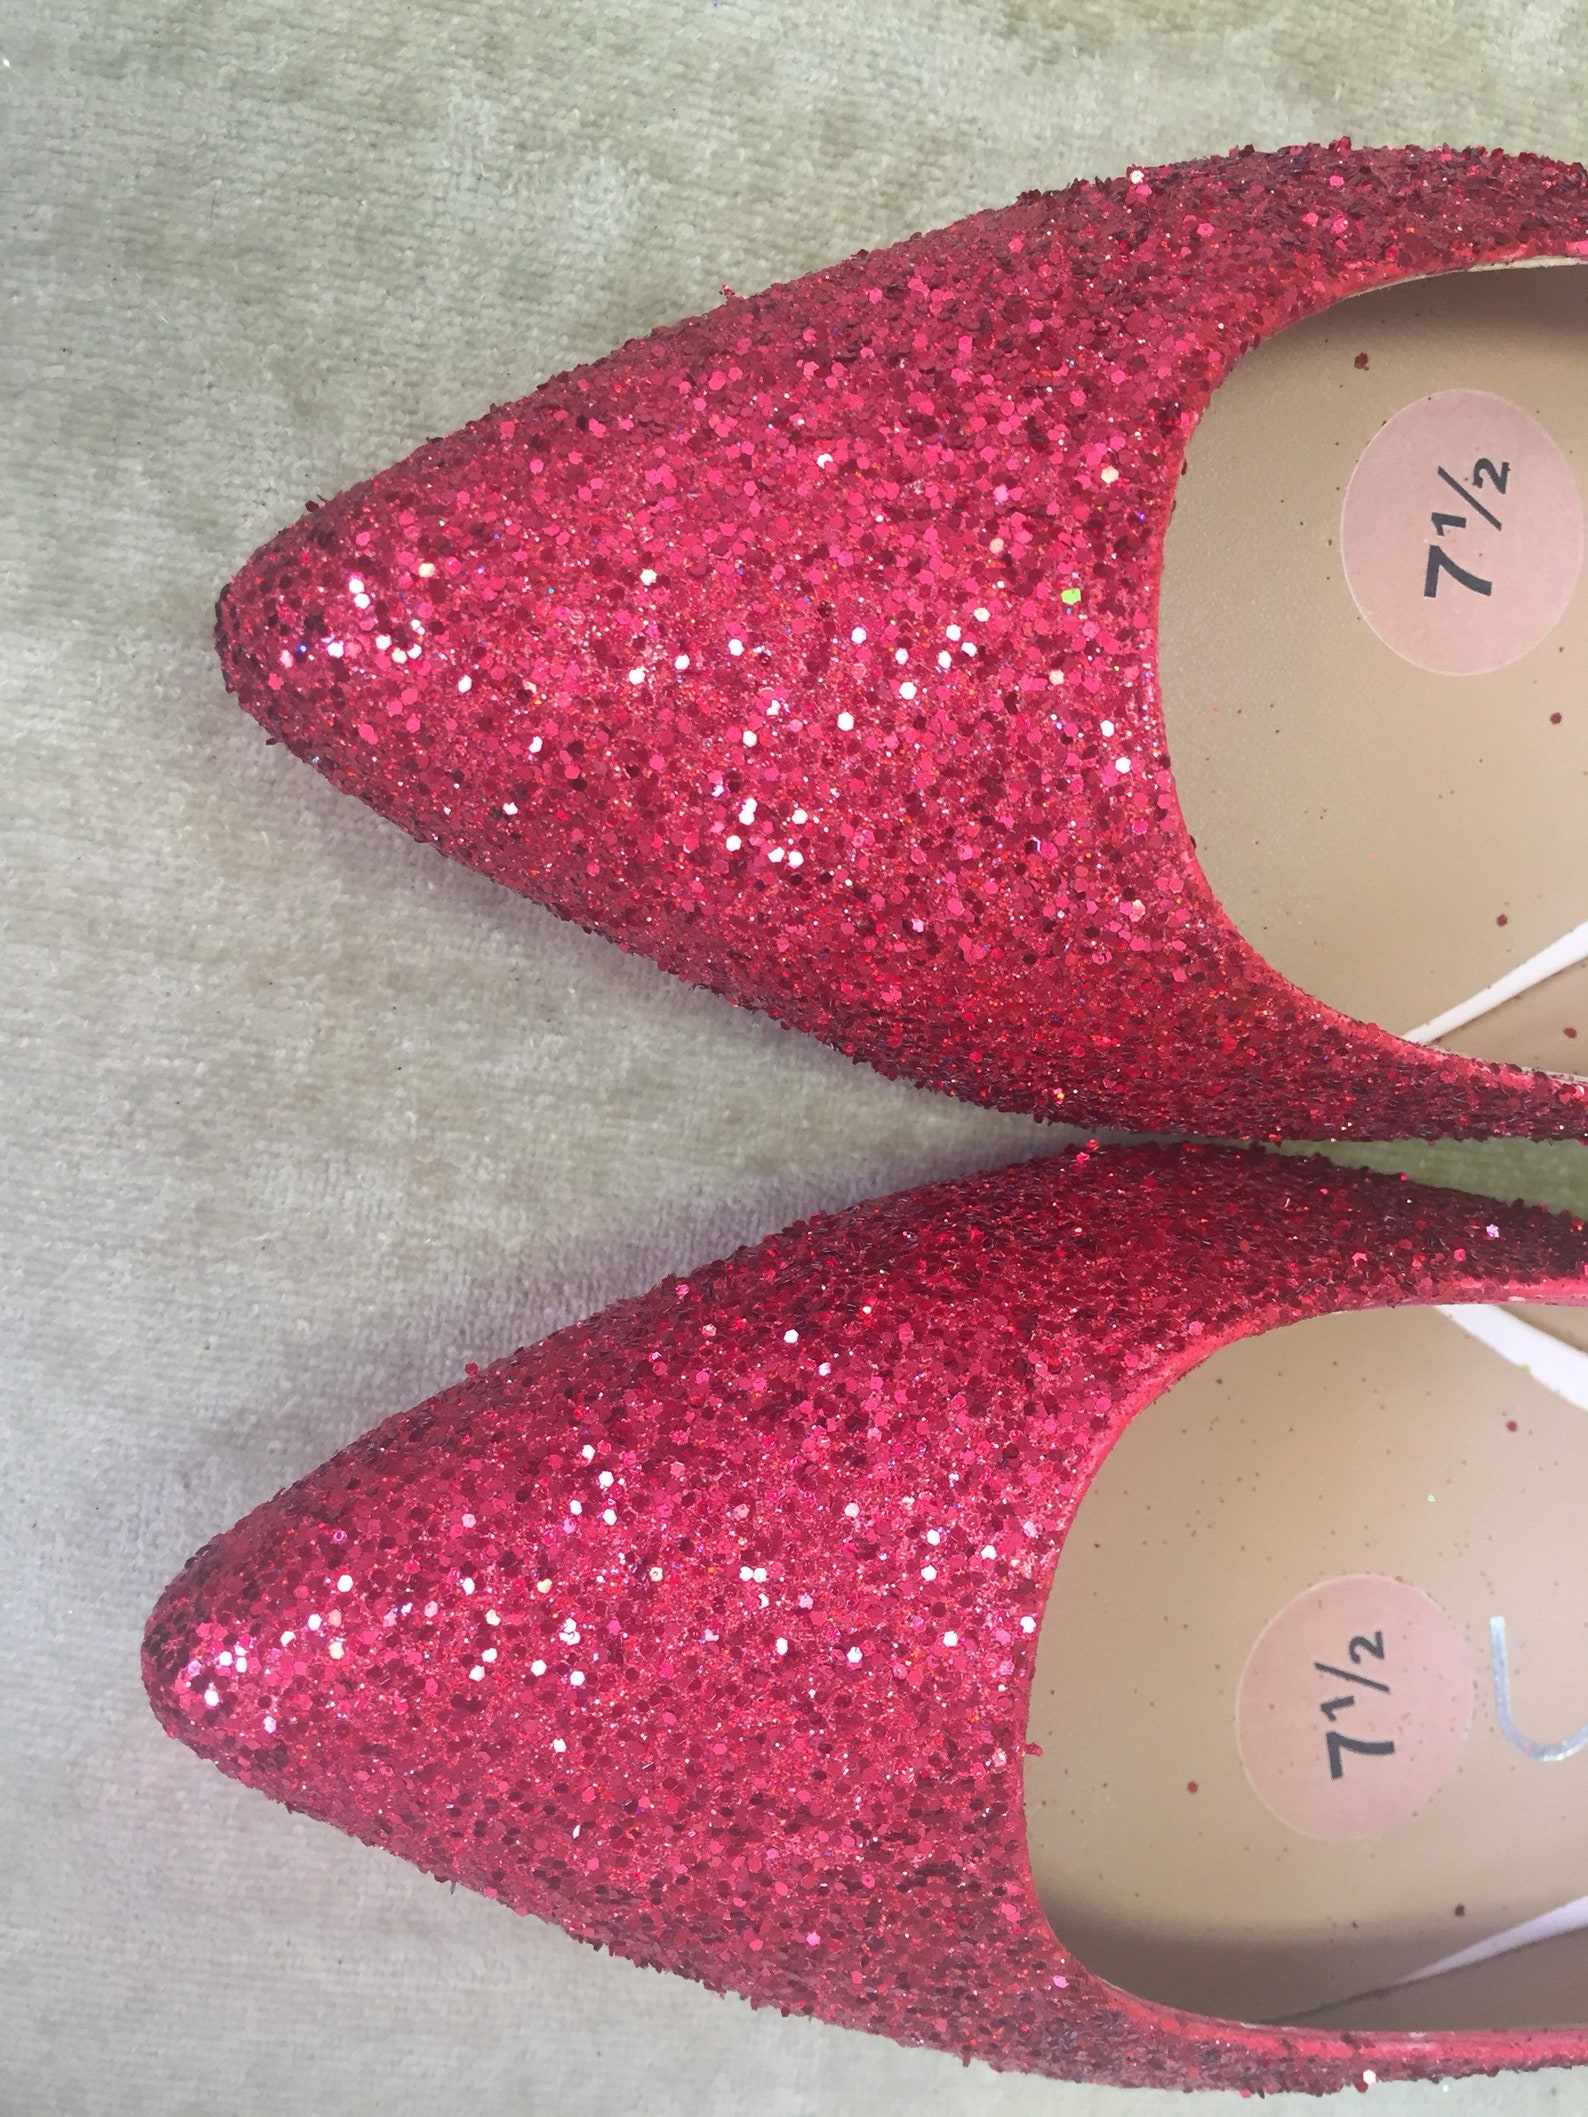 women's custom made to order red glitter pointed toe ballet flats. glitter flats. slip on shoes